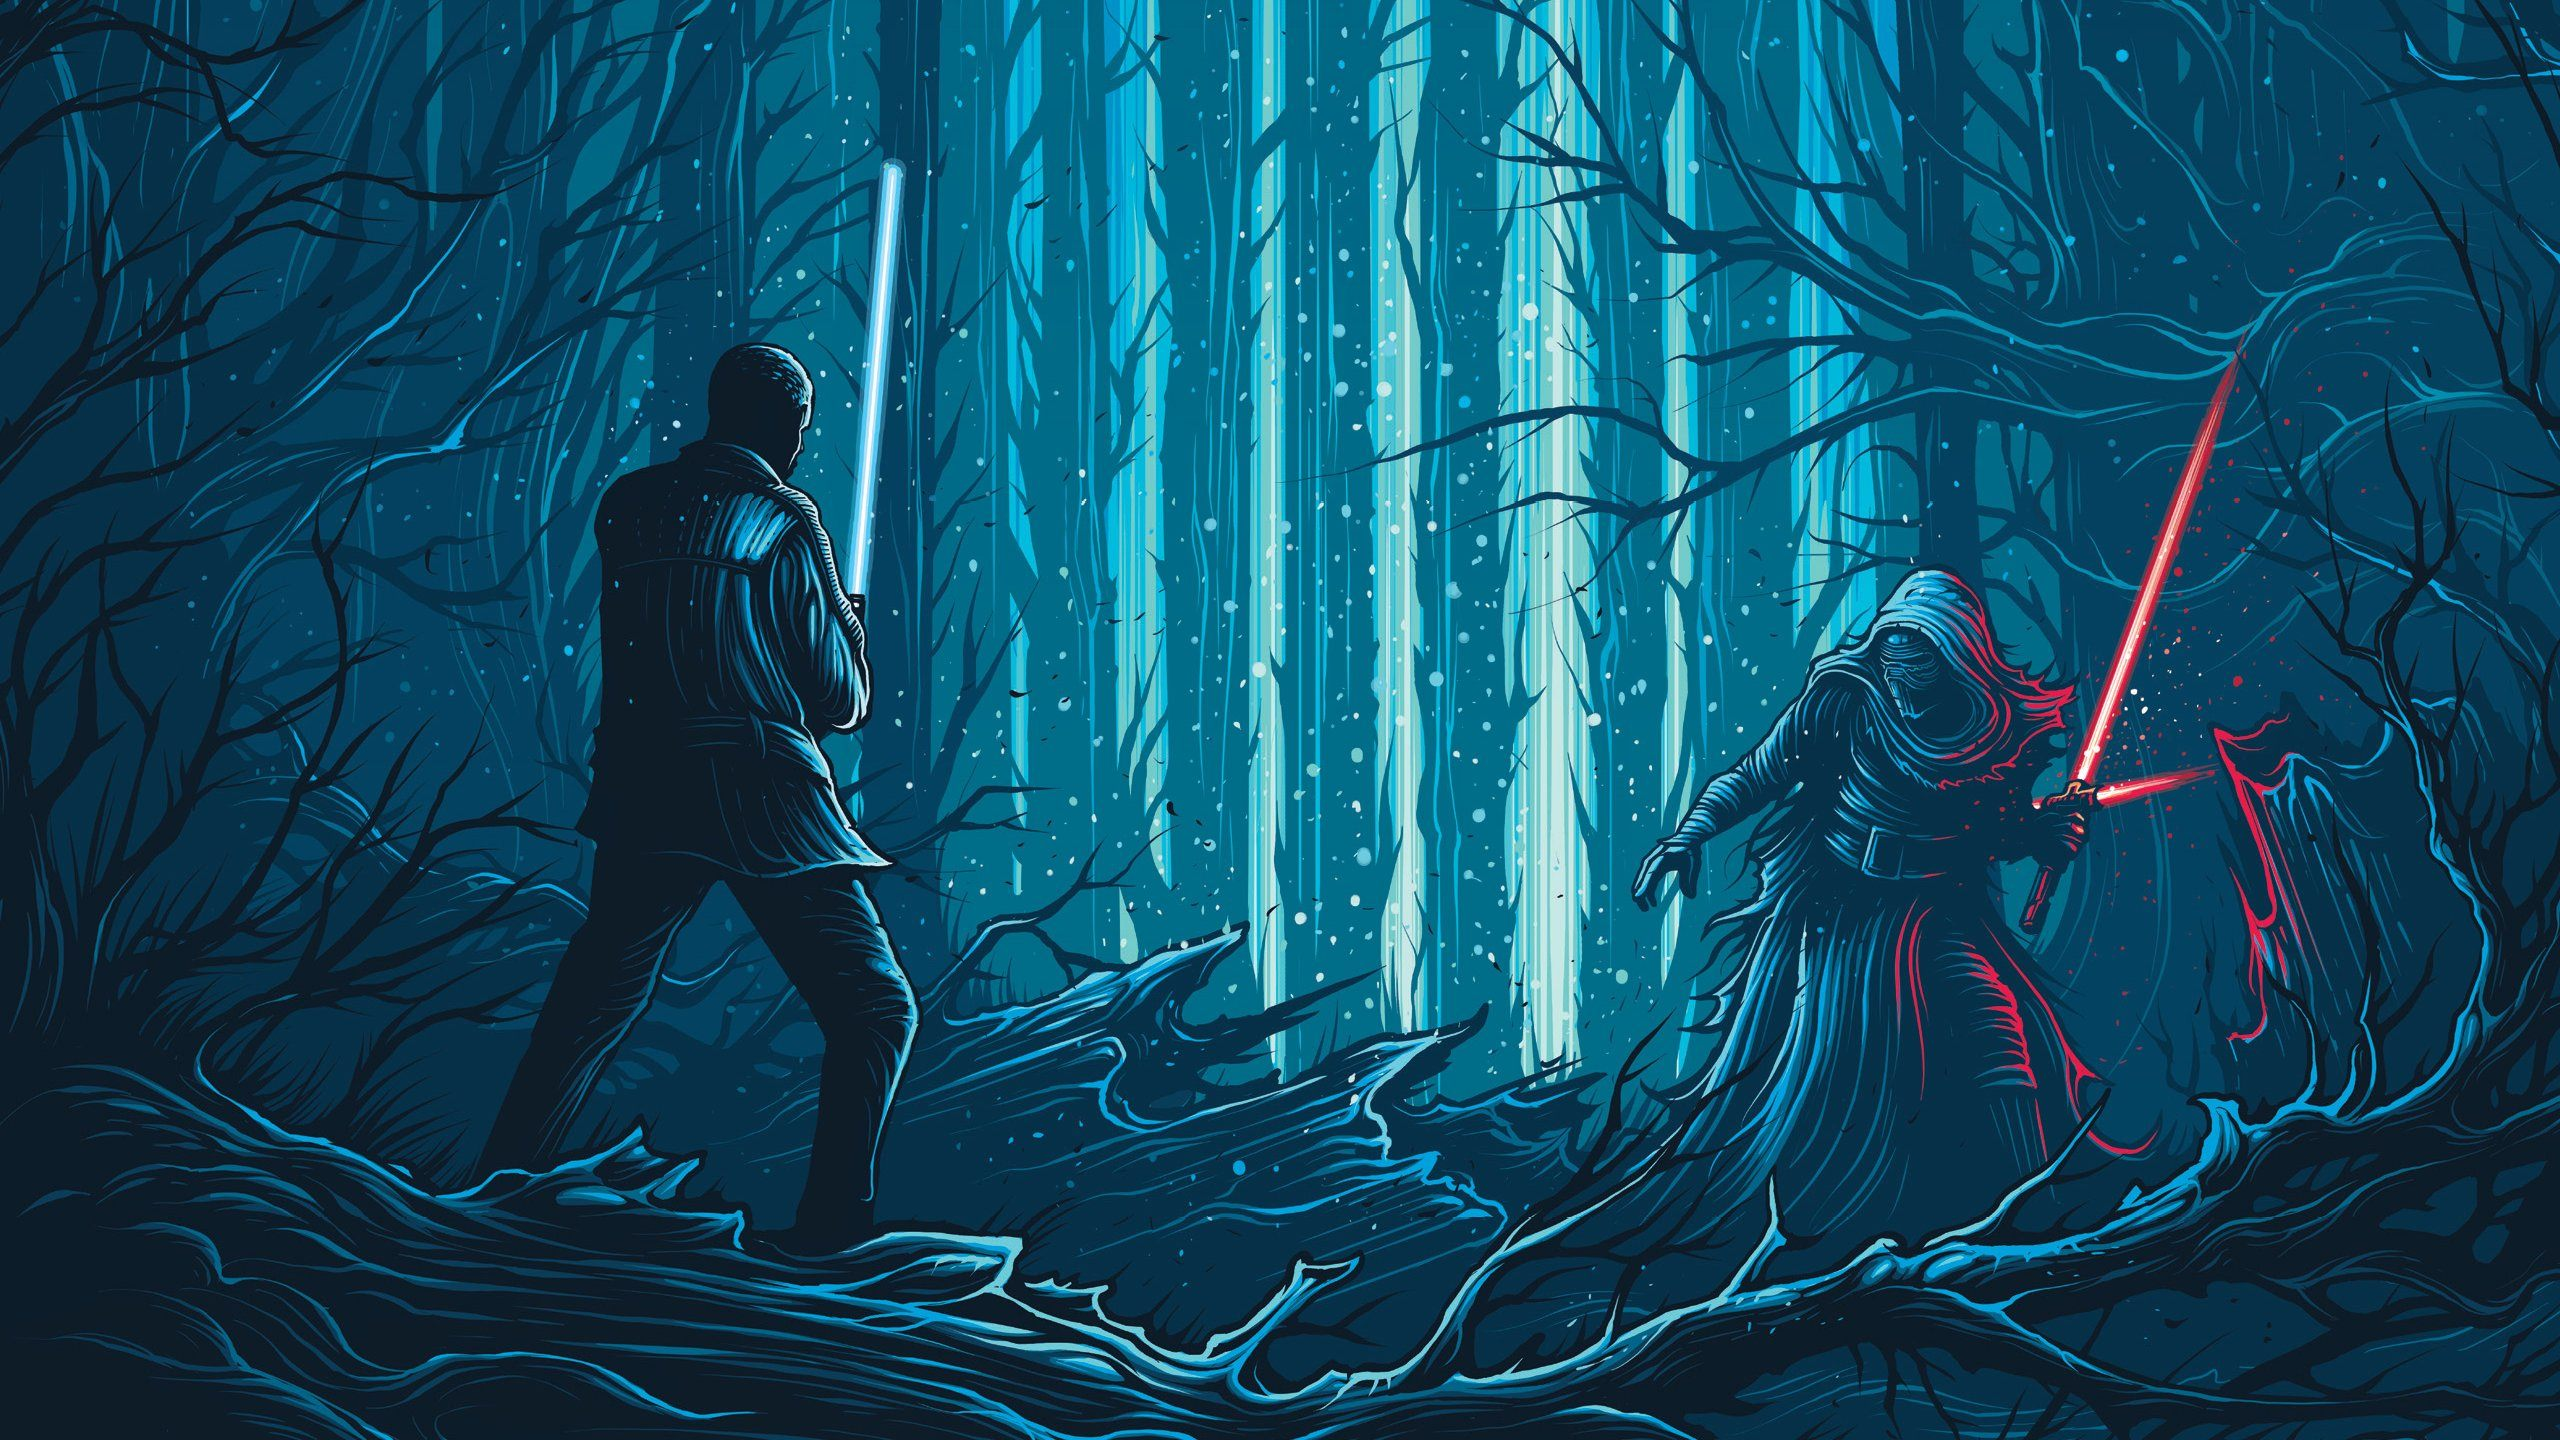 4k Star Wars Wallpapers Posted By Sarah Peltier